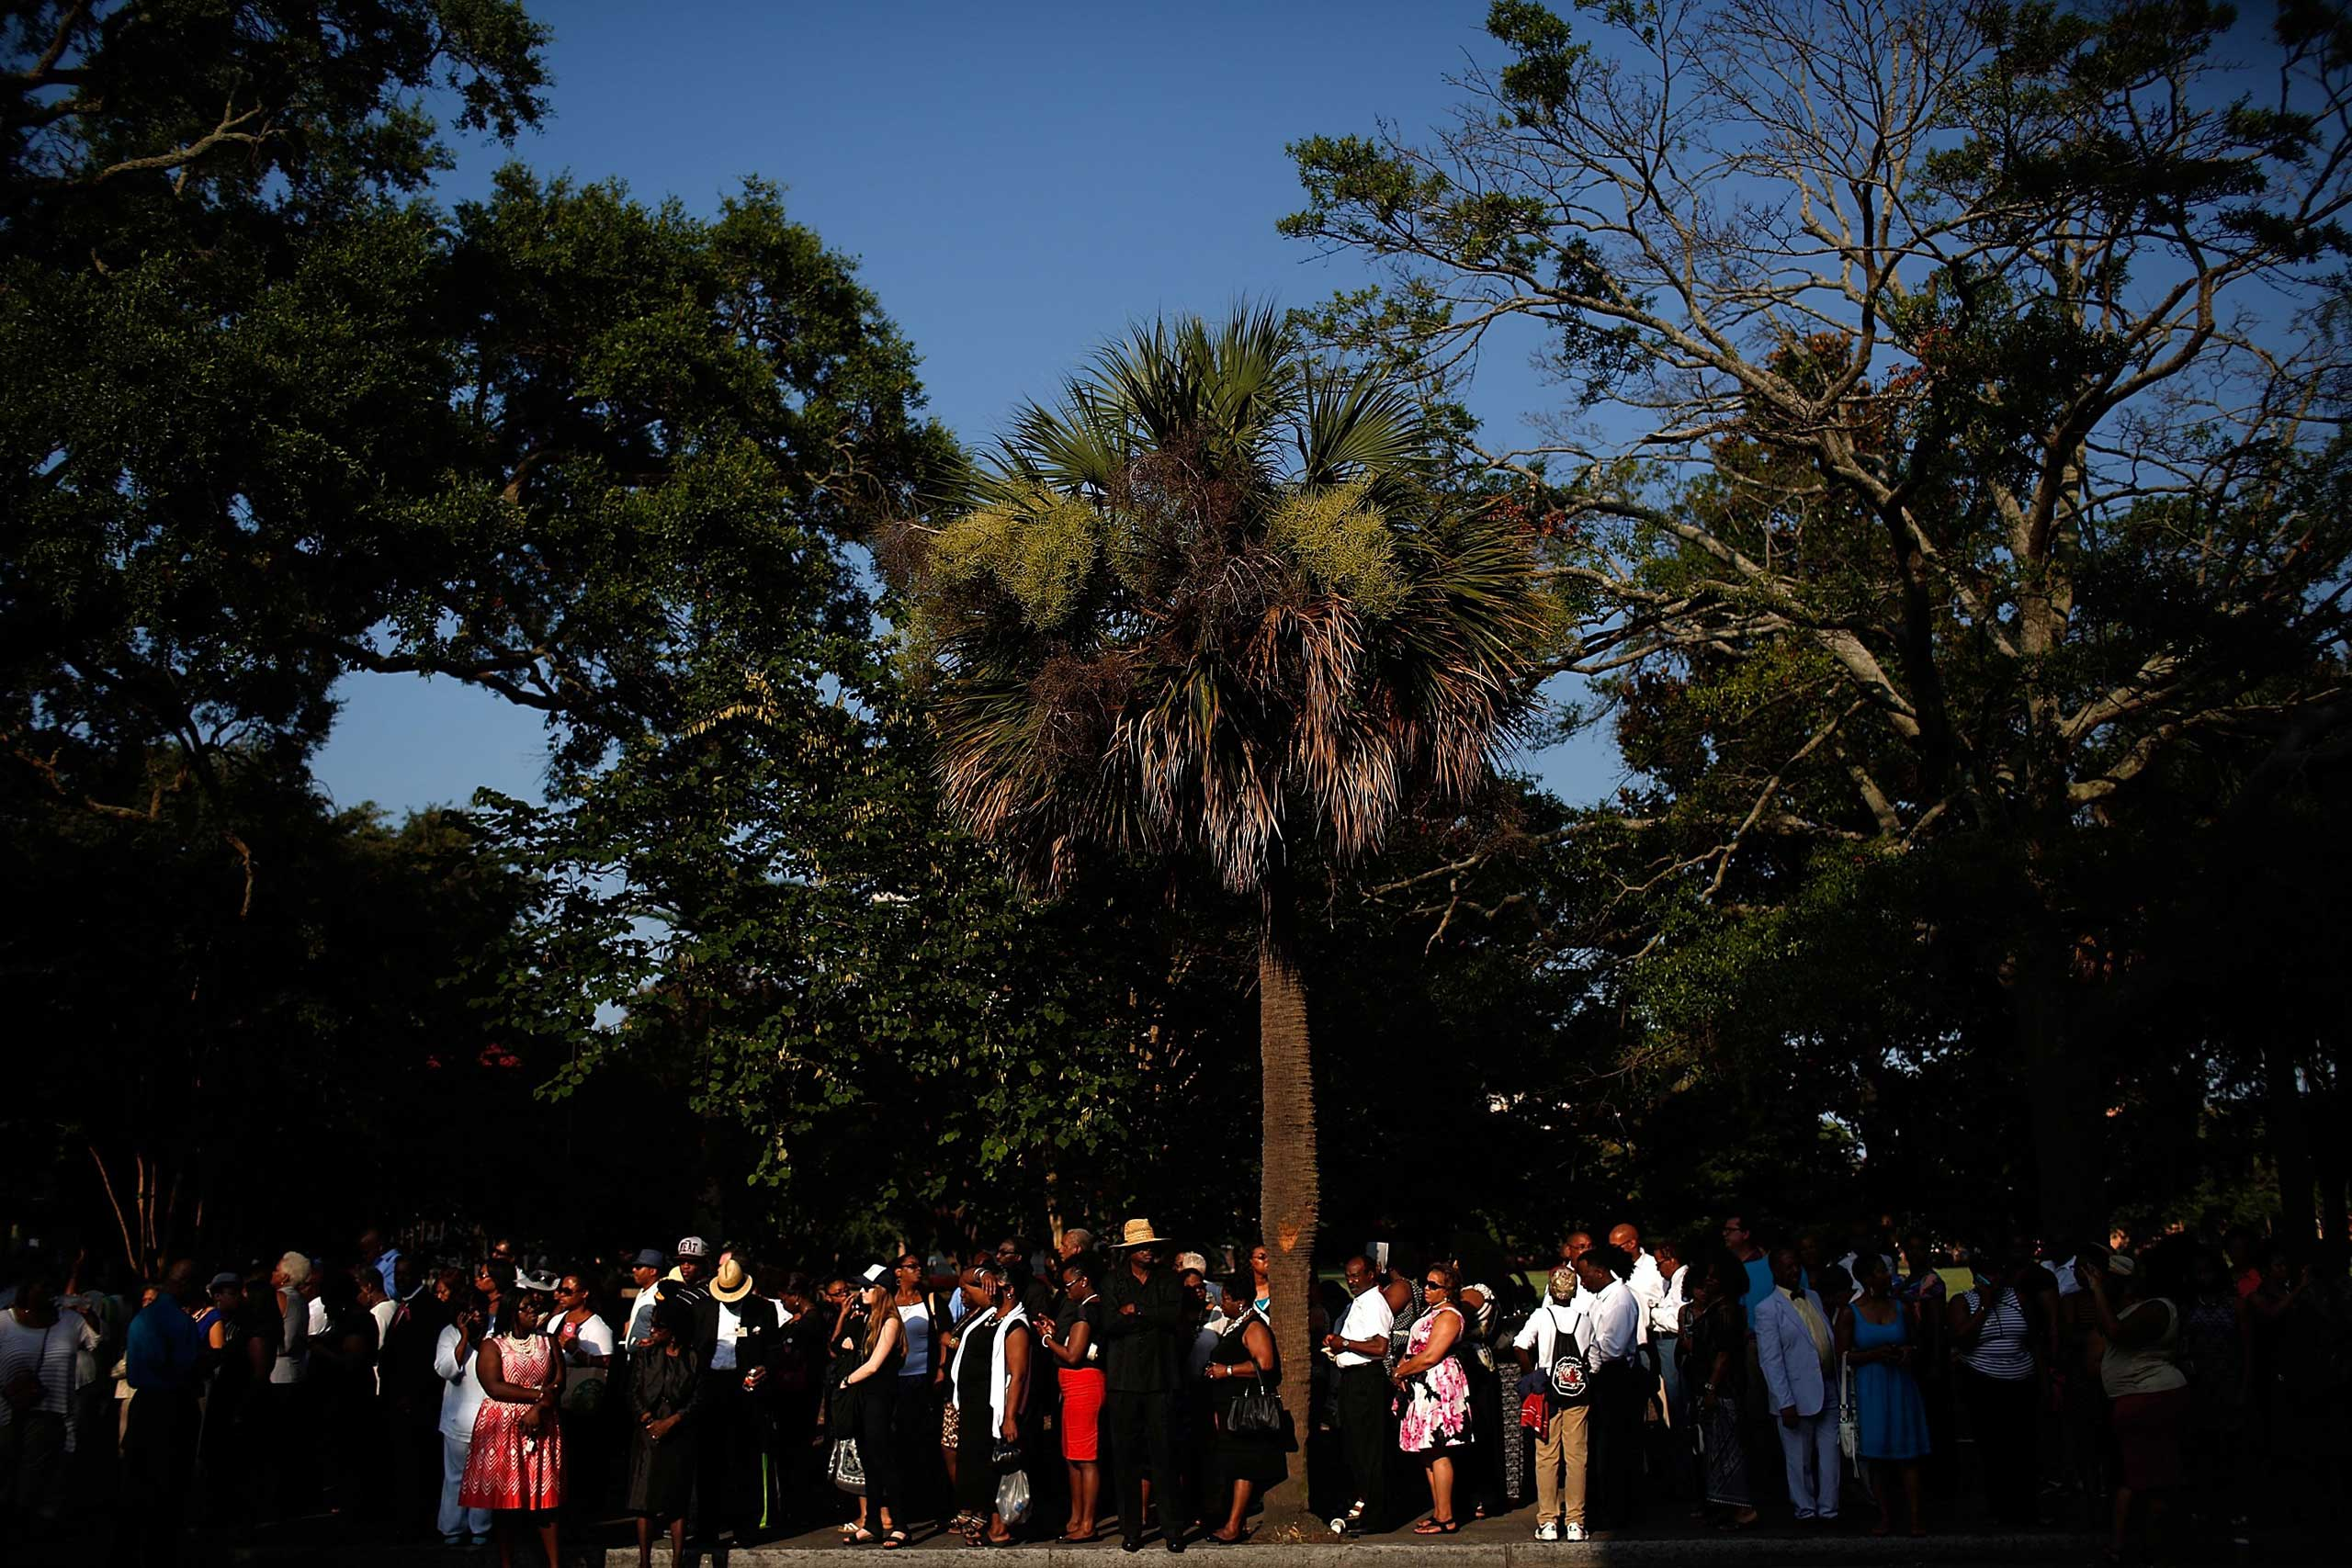 People wait in line to enter the funeral service Rev. Clementa Pinckney in Charleston, S.C. on June 26, 2015.